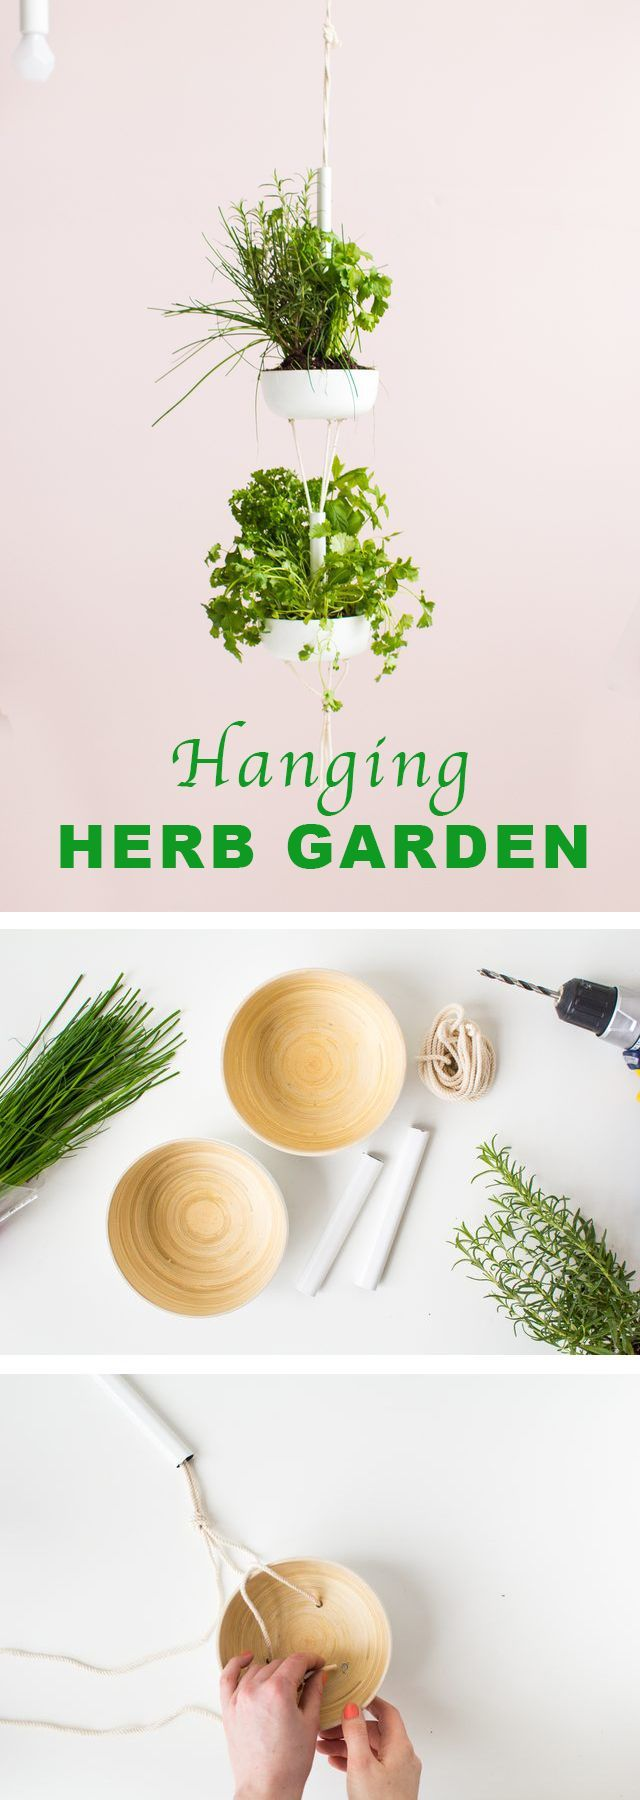 DIY your own hanging herb garden! With this hanging herb garden it doesn't matter how much or how little space you have to dedicate to your garden — you can grow all the herbs you need in just a small corner of your home. http://www.ehow.com/how_12343158_easy-hanging-herb-garden.html?utm_source=pinterest.com&utm_medium=referral&utm_content=freestyle&utm_campaign=fanpage